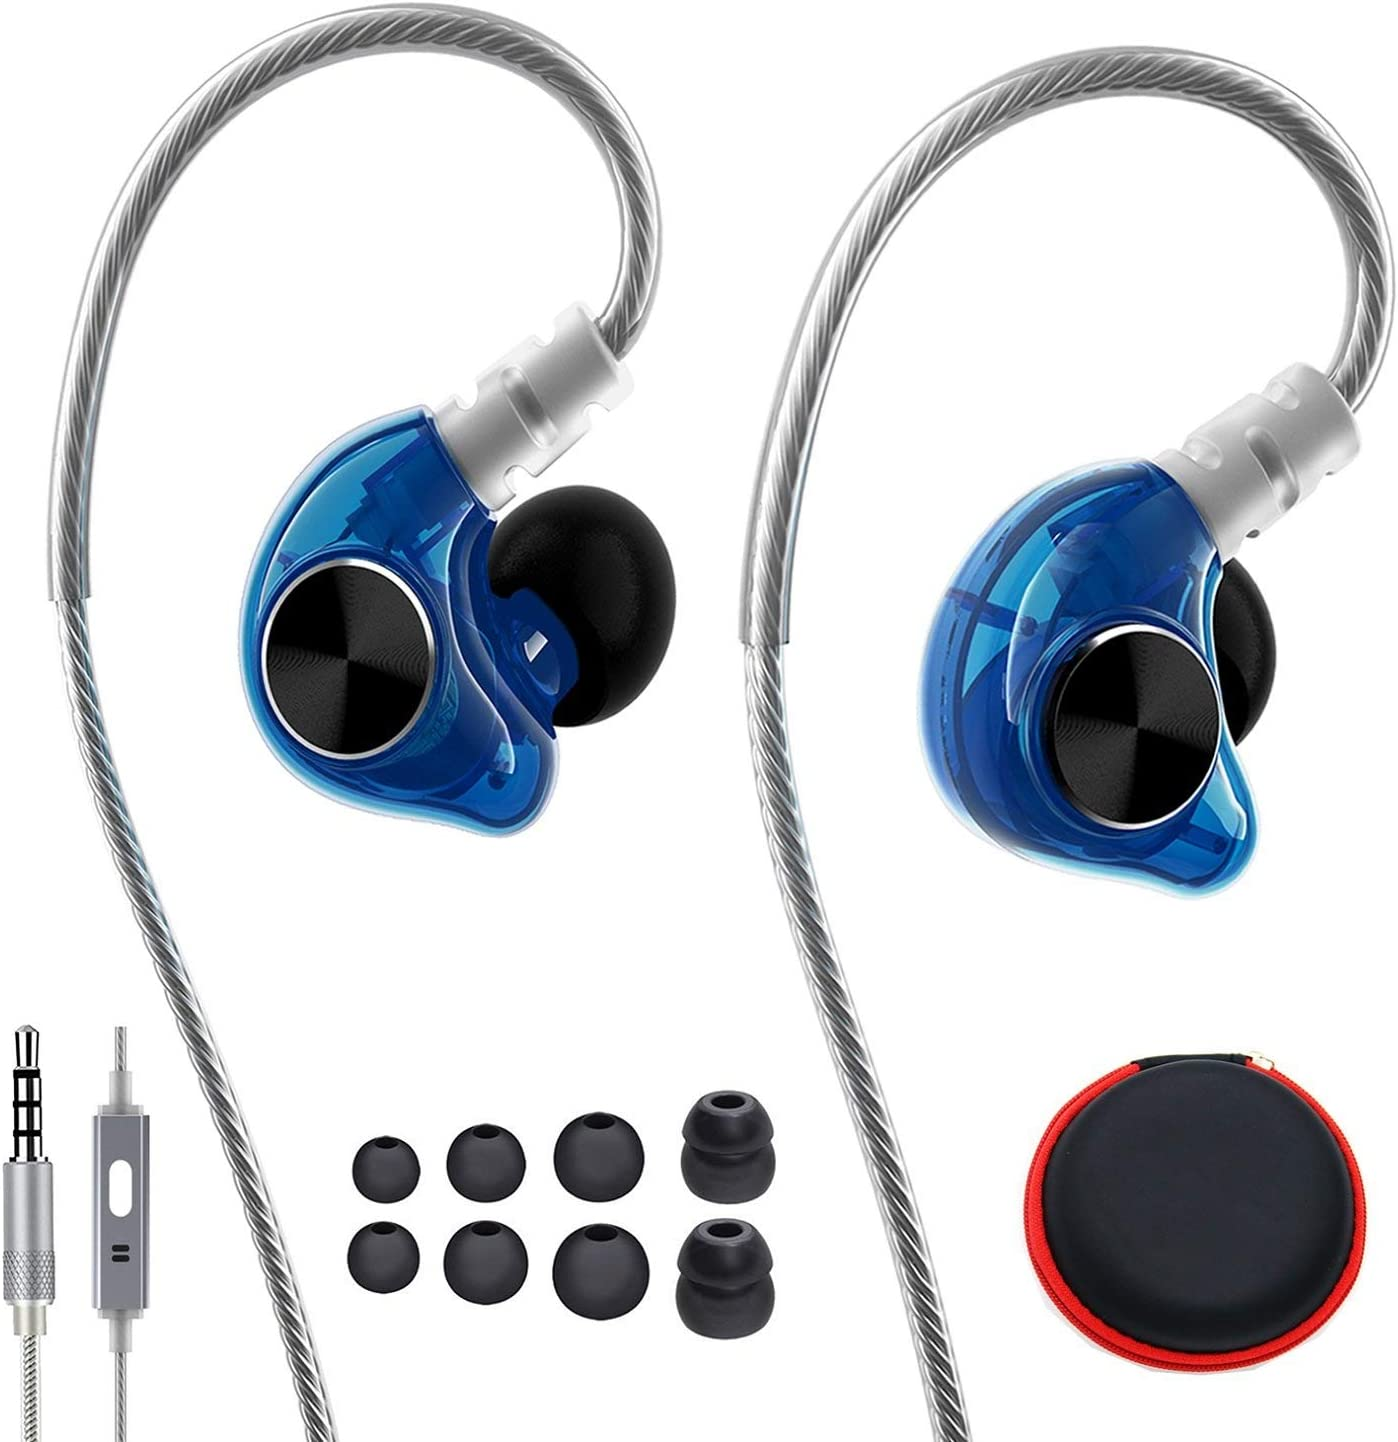 Running Headphones, LZHE in Ear Hi-Fi Monitor Earbuds with Noise Isolating, Mic and Remote, Flex Memory Wire Earhooks Earphones for Sports Running Jogging Gym Exercise Workout iPhone Samsung – Blue